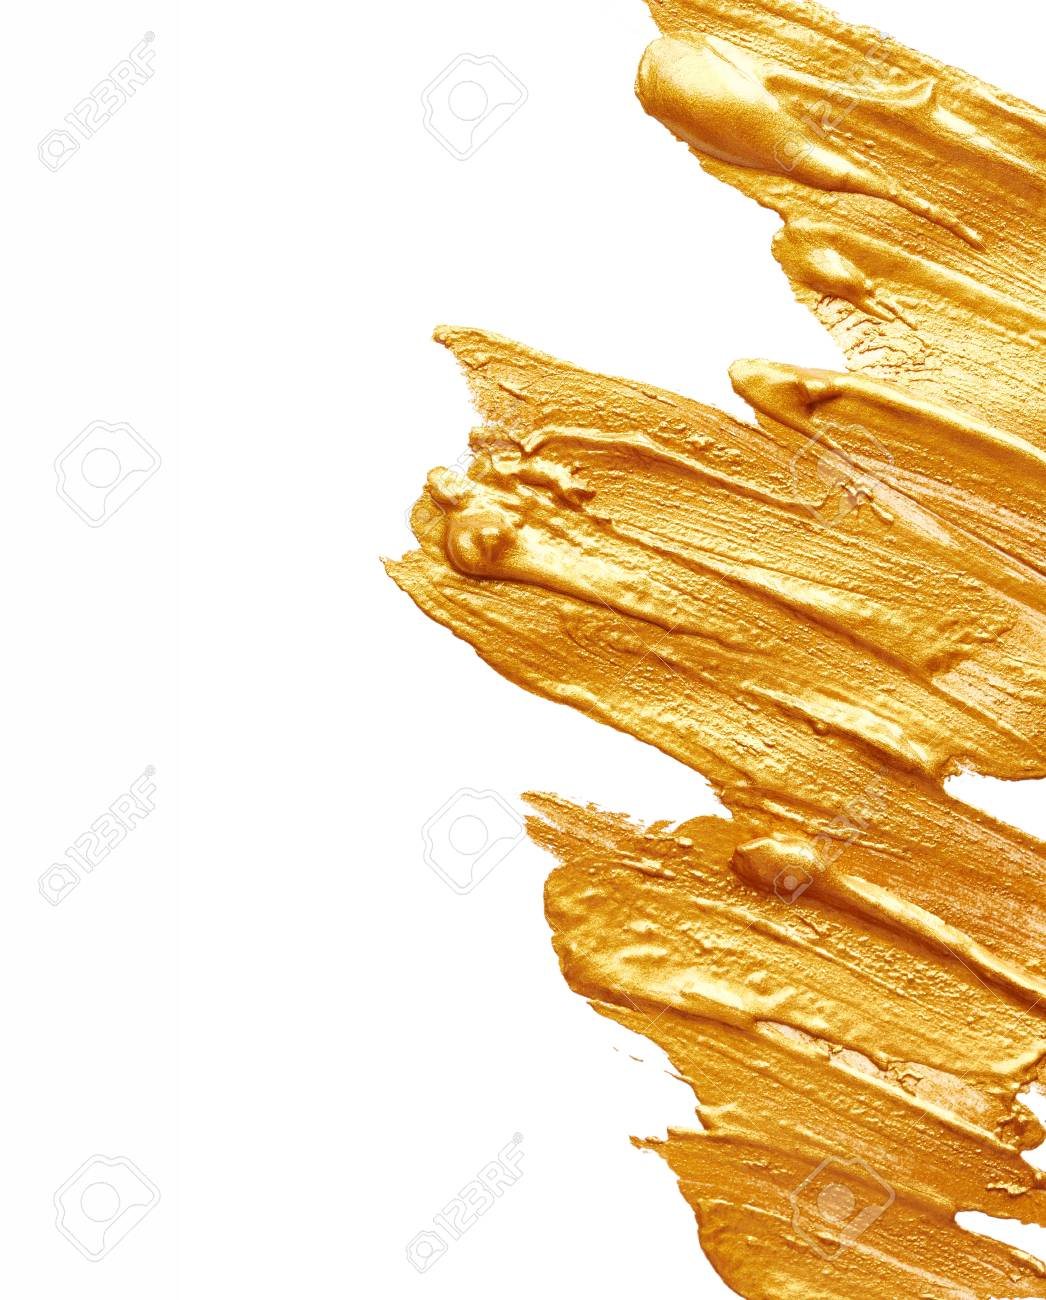 Strokes of golden paint isolated on white background - 40642754